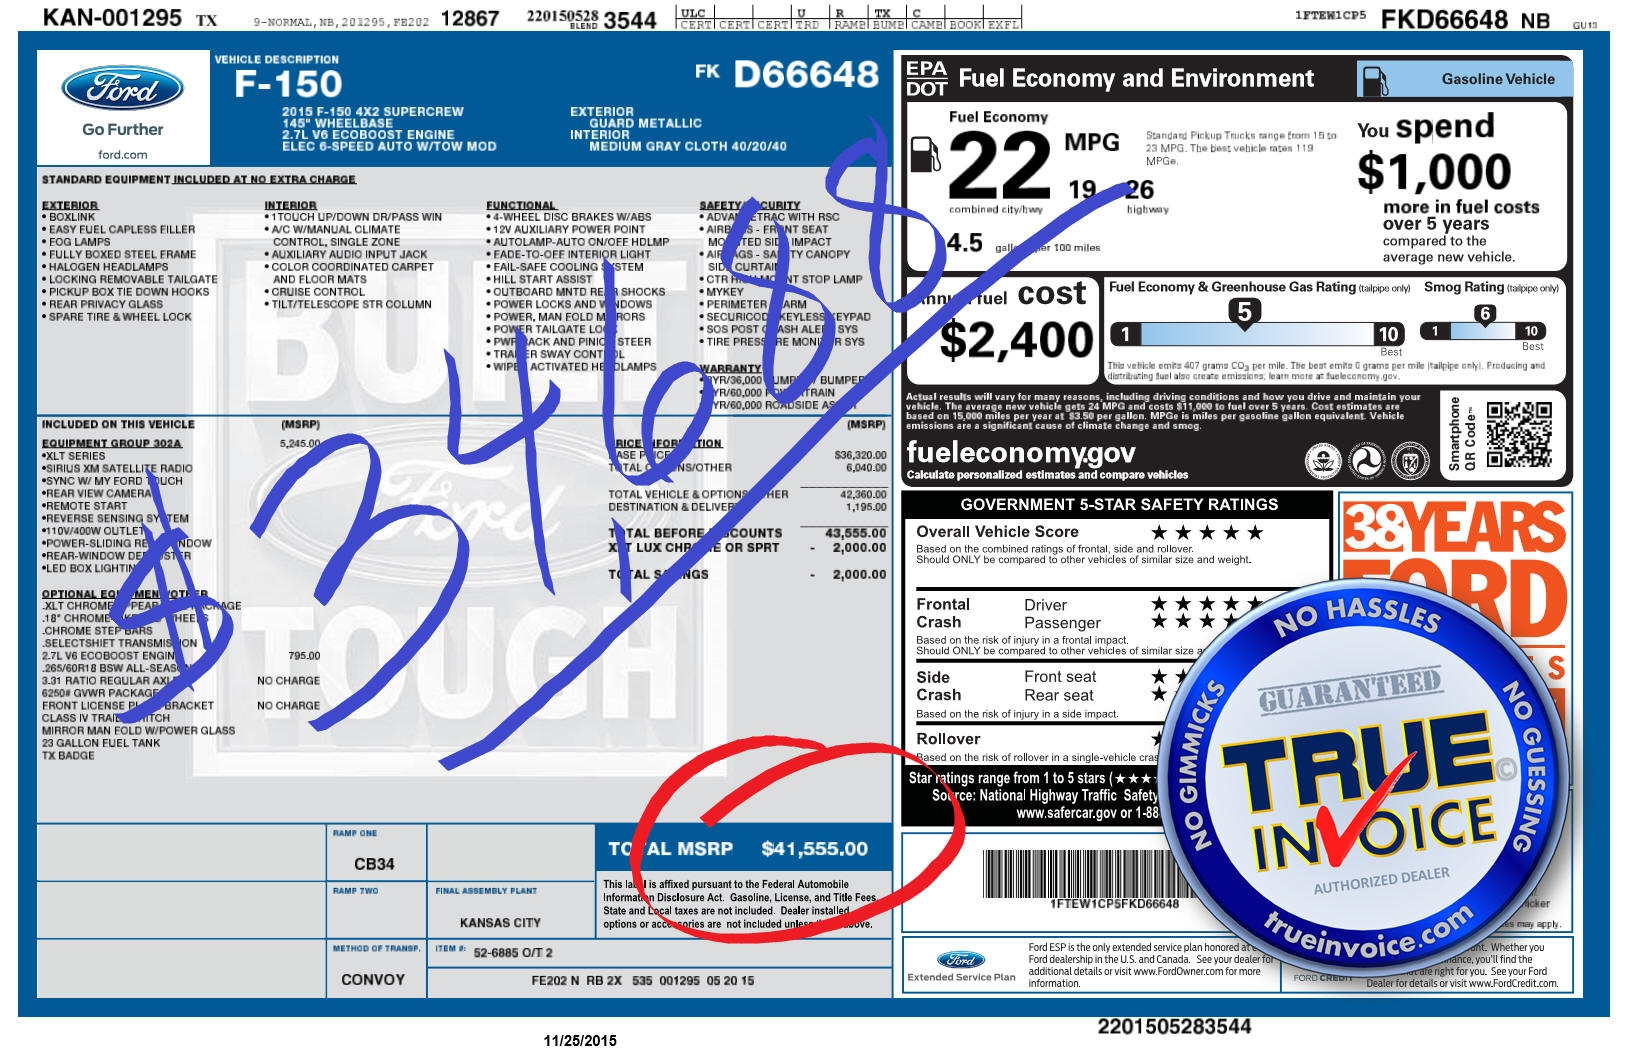 true invoice 2016 ford f150 true invoice price for cars